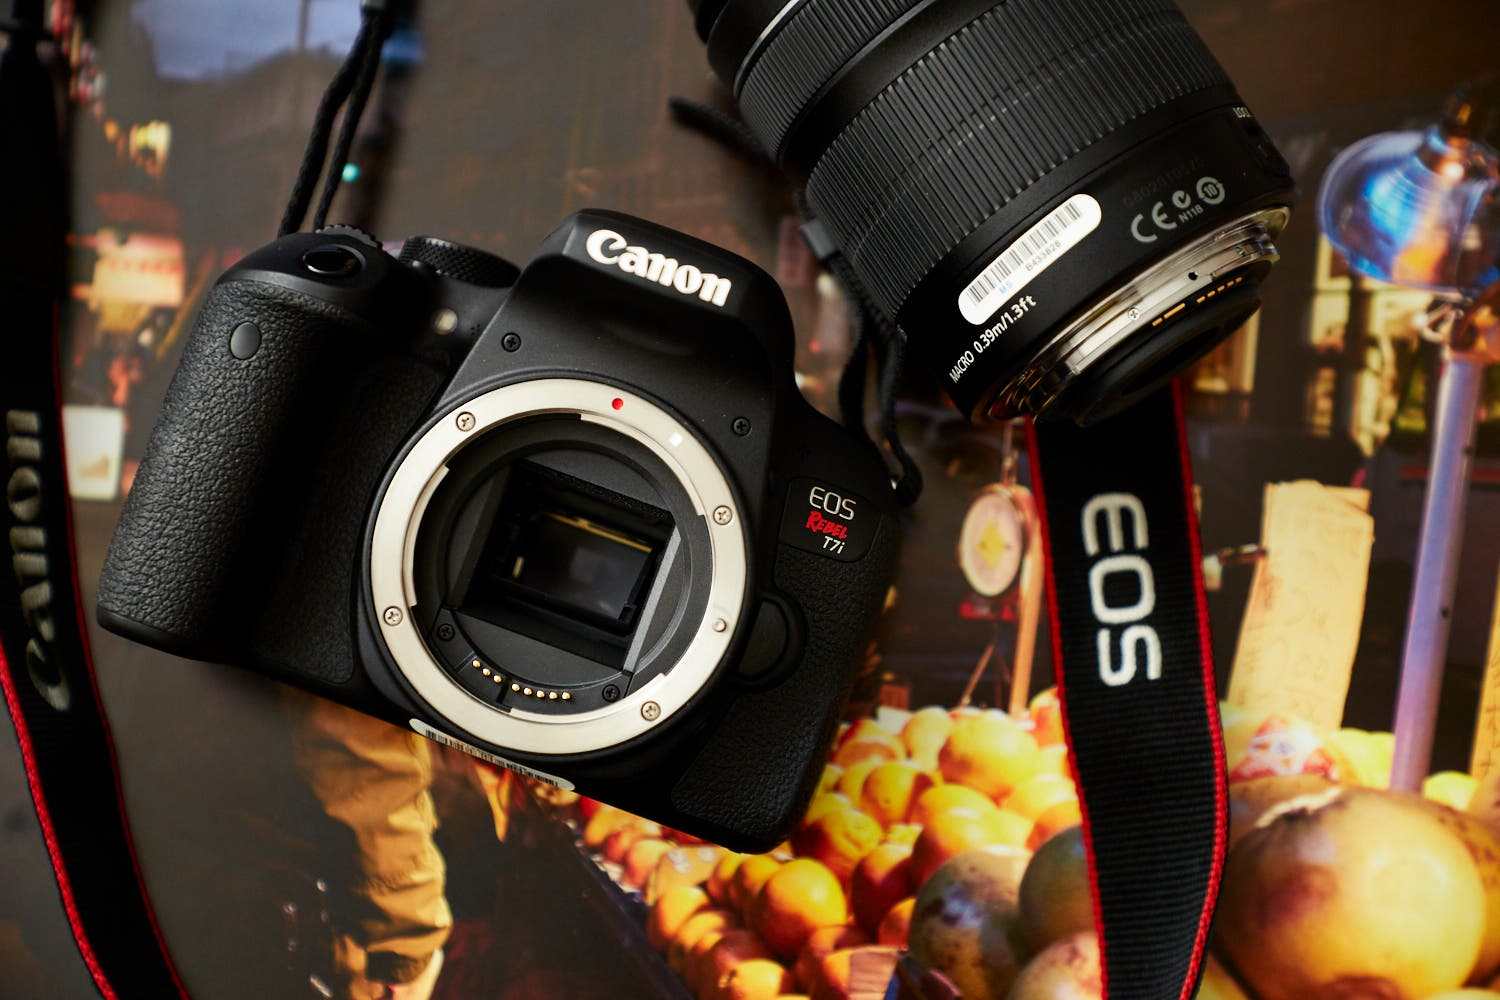 Could a Full Frame Mirrorless Canon Rebel Be an Ace in The Hole?